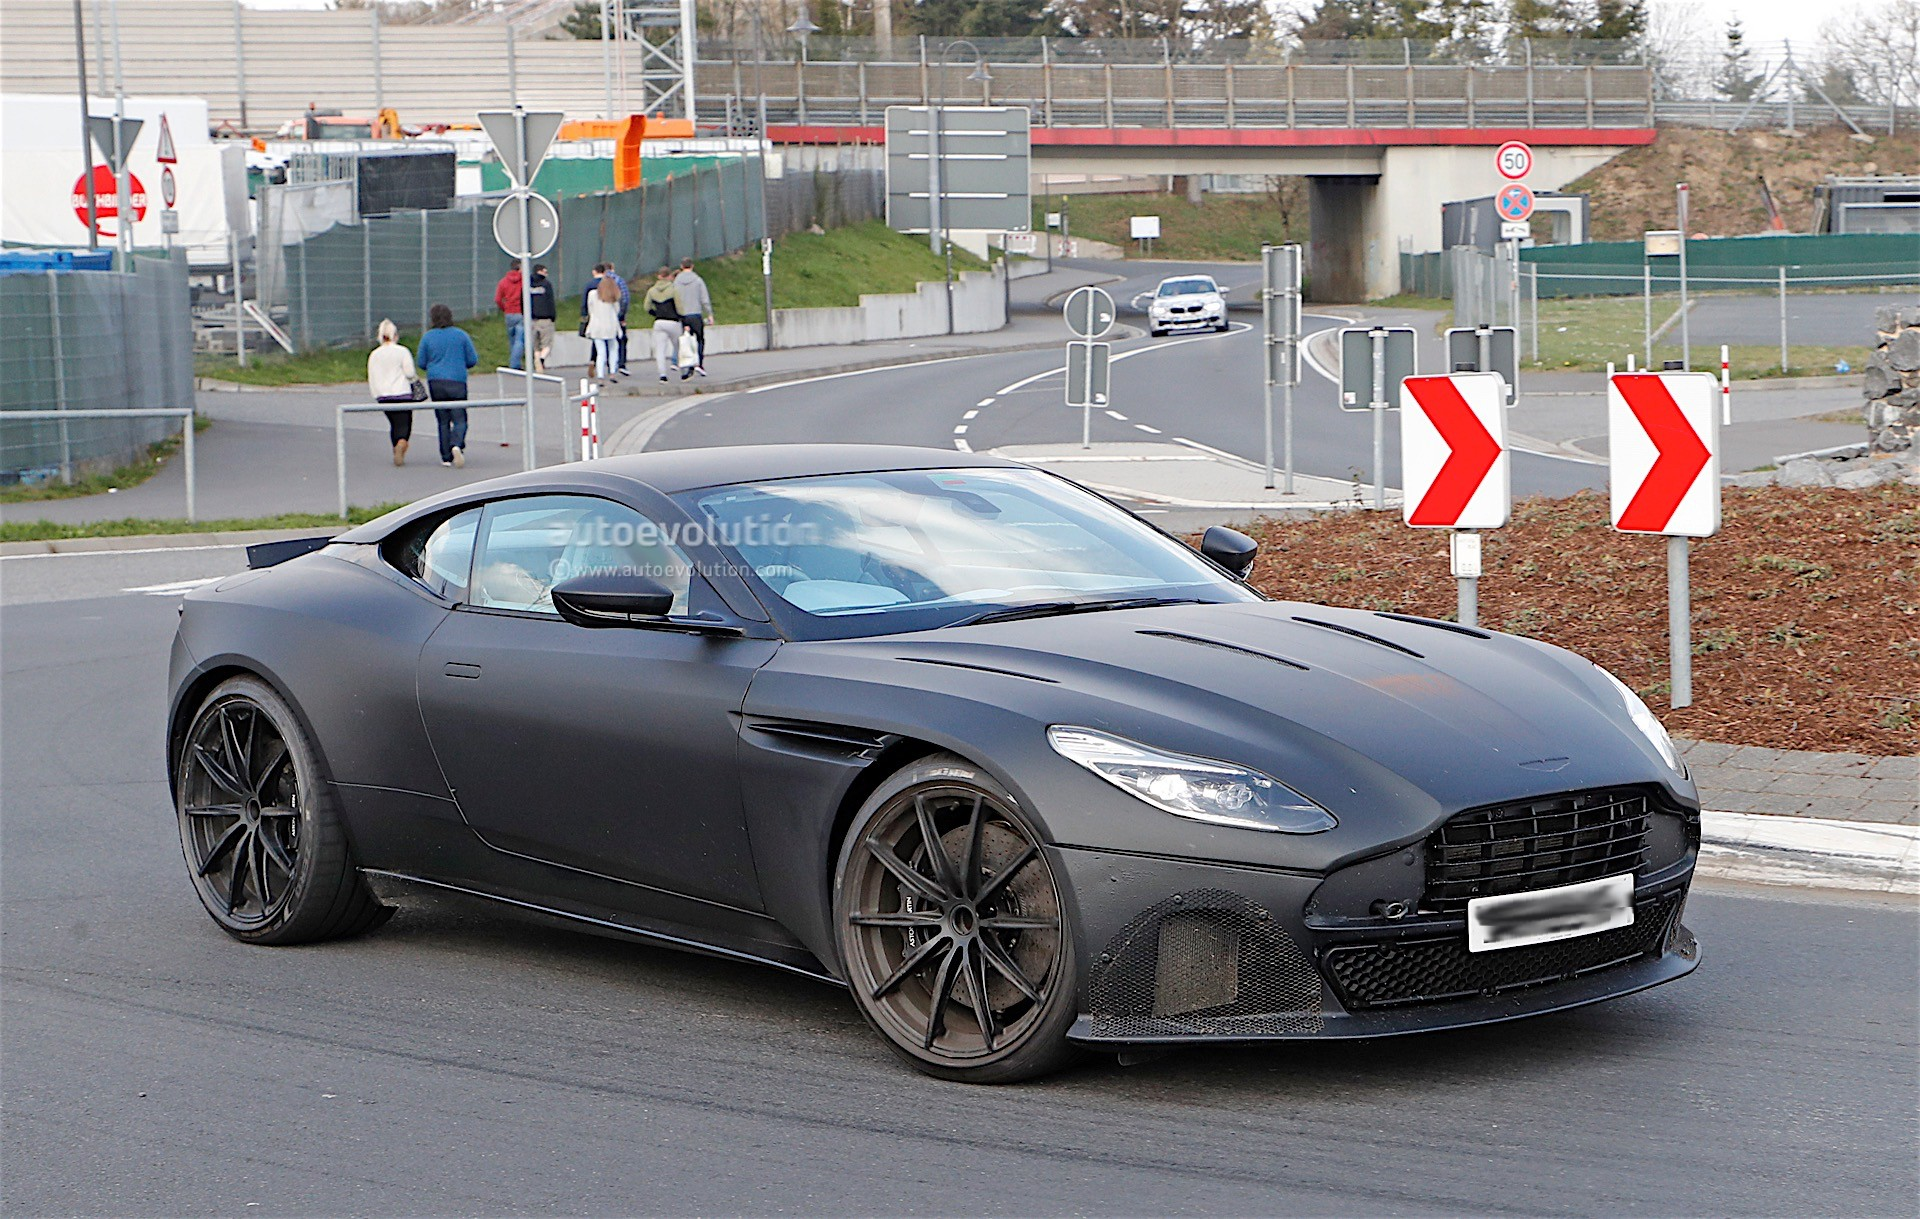 Aston Martin Db11 S Spied Near The Nurburgring It Looks Ready For Production Autoevolution